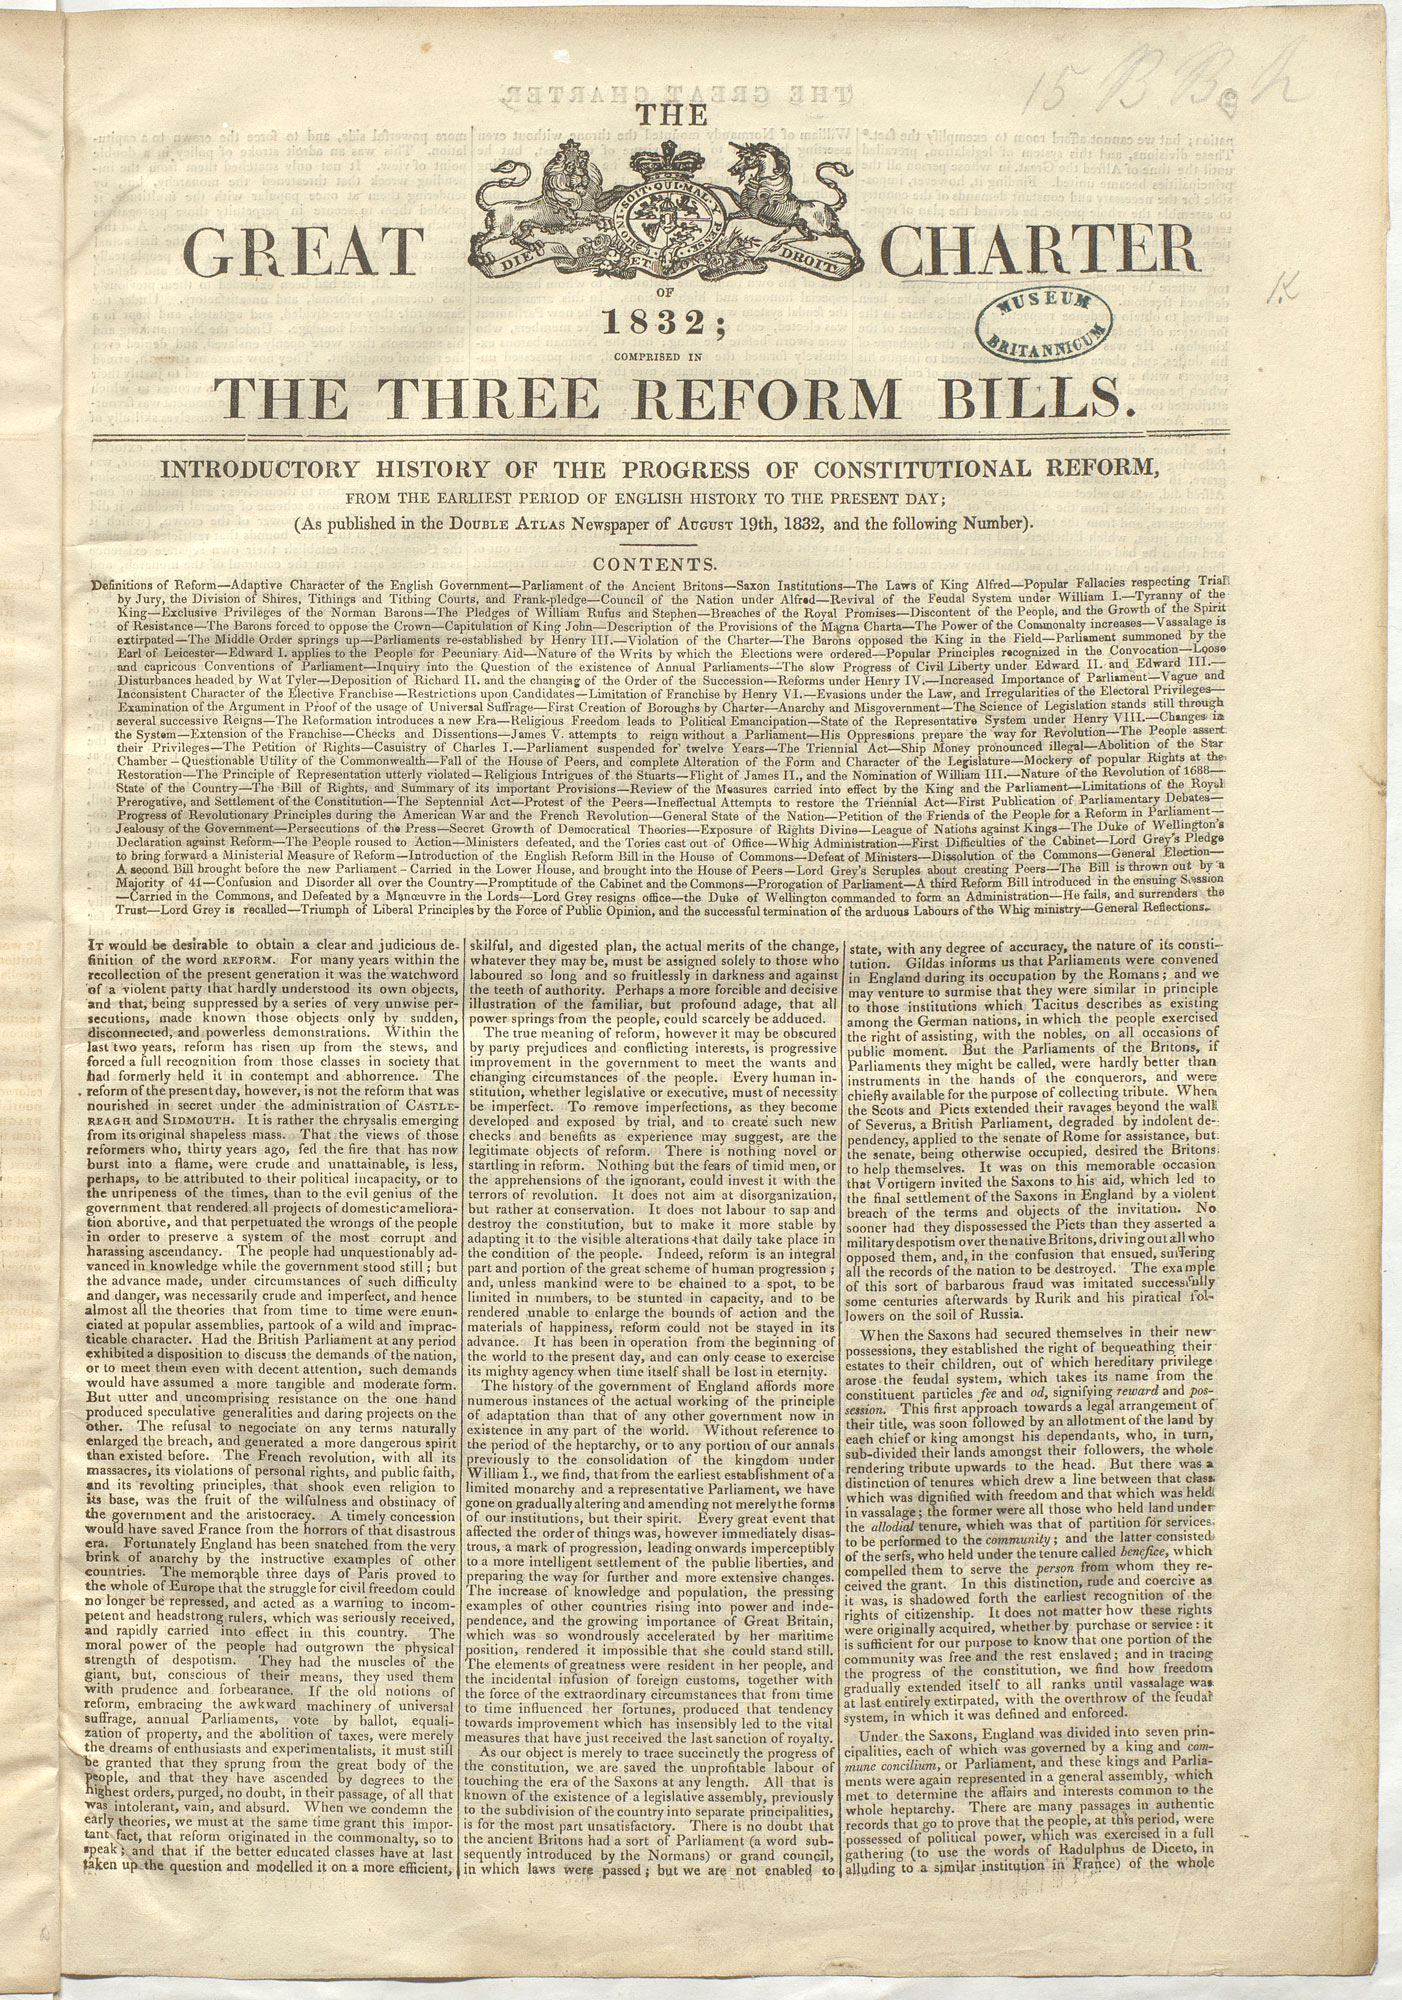 The Great Charter of 1832 - The British Library